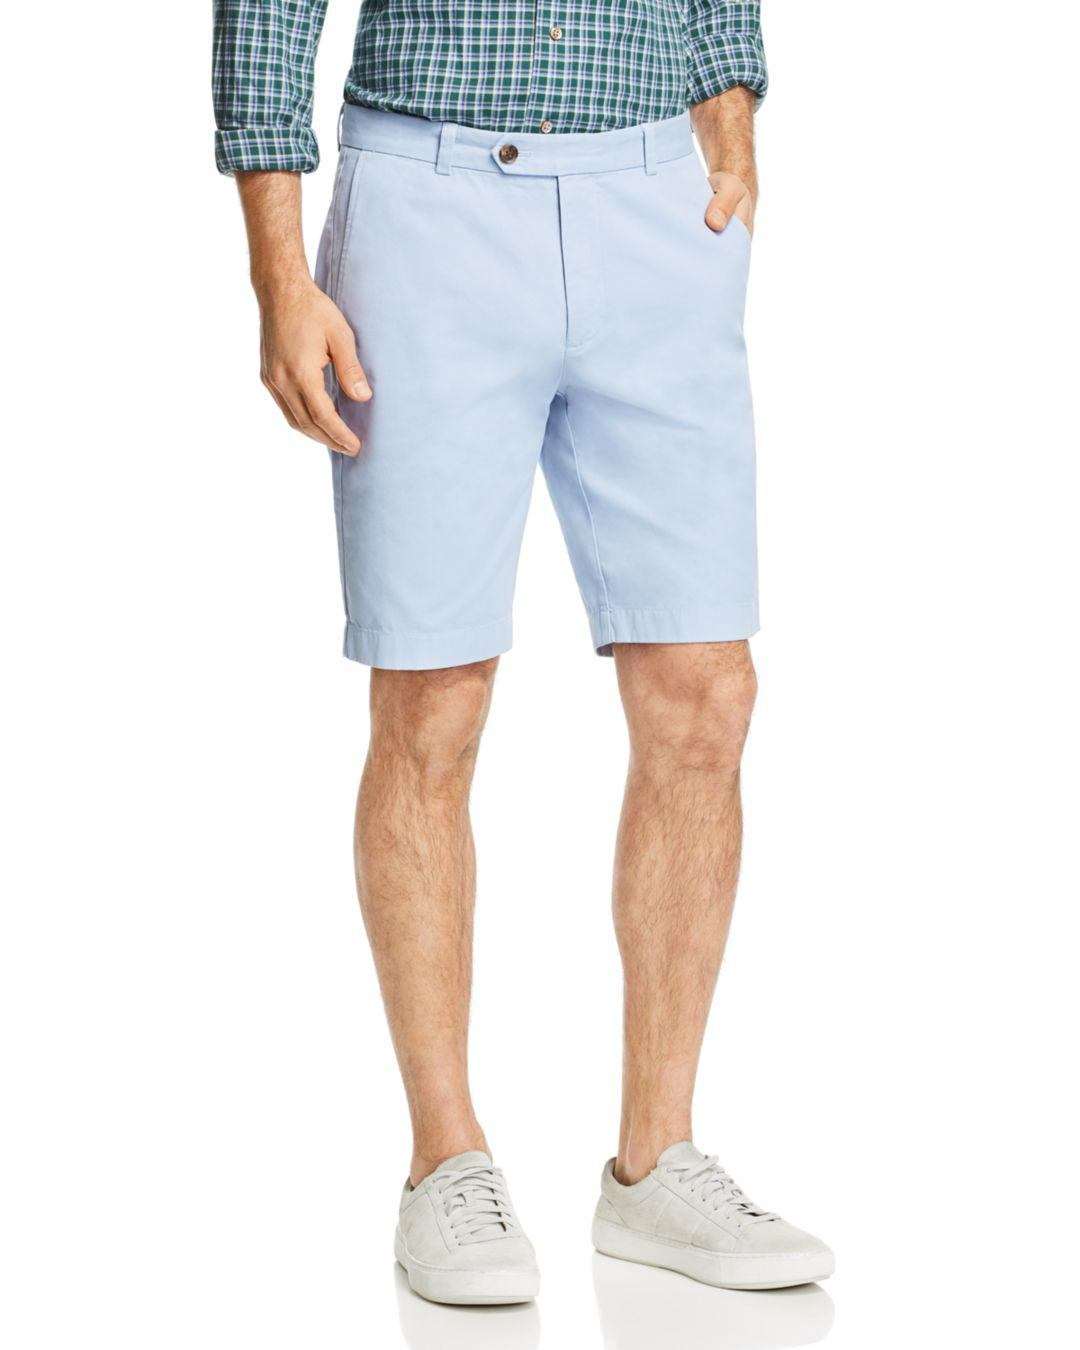 350d6939be Lyst - Brooks Brothers Garment-dyed Bermuda Shorts in Blue for Men